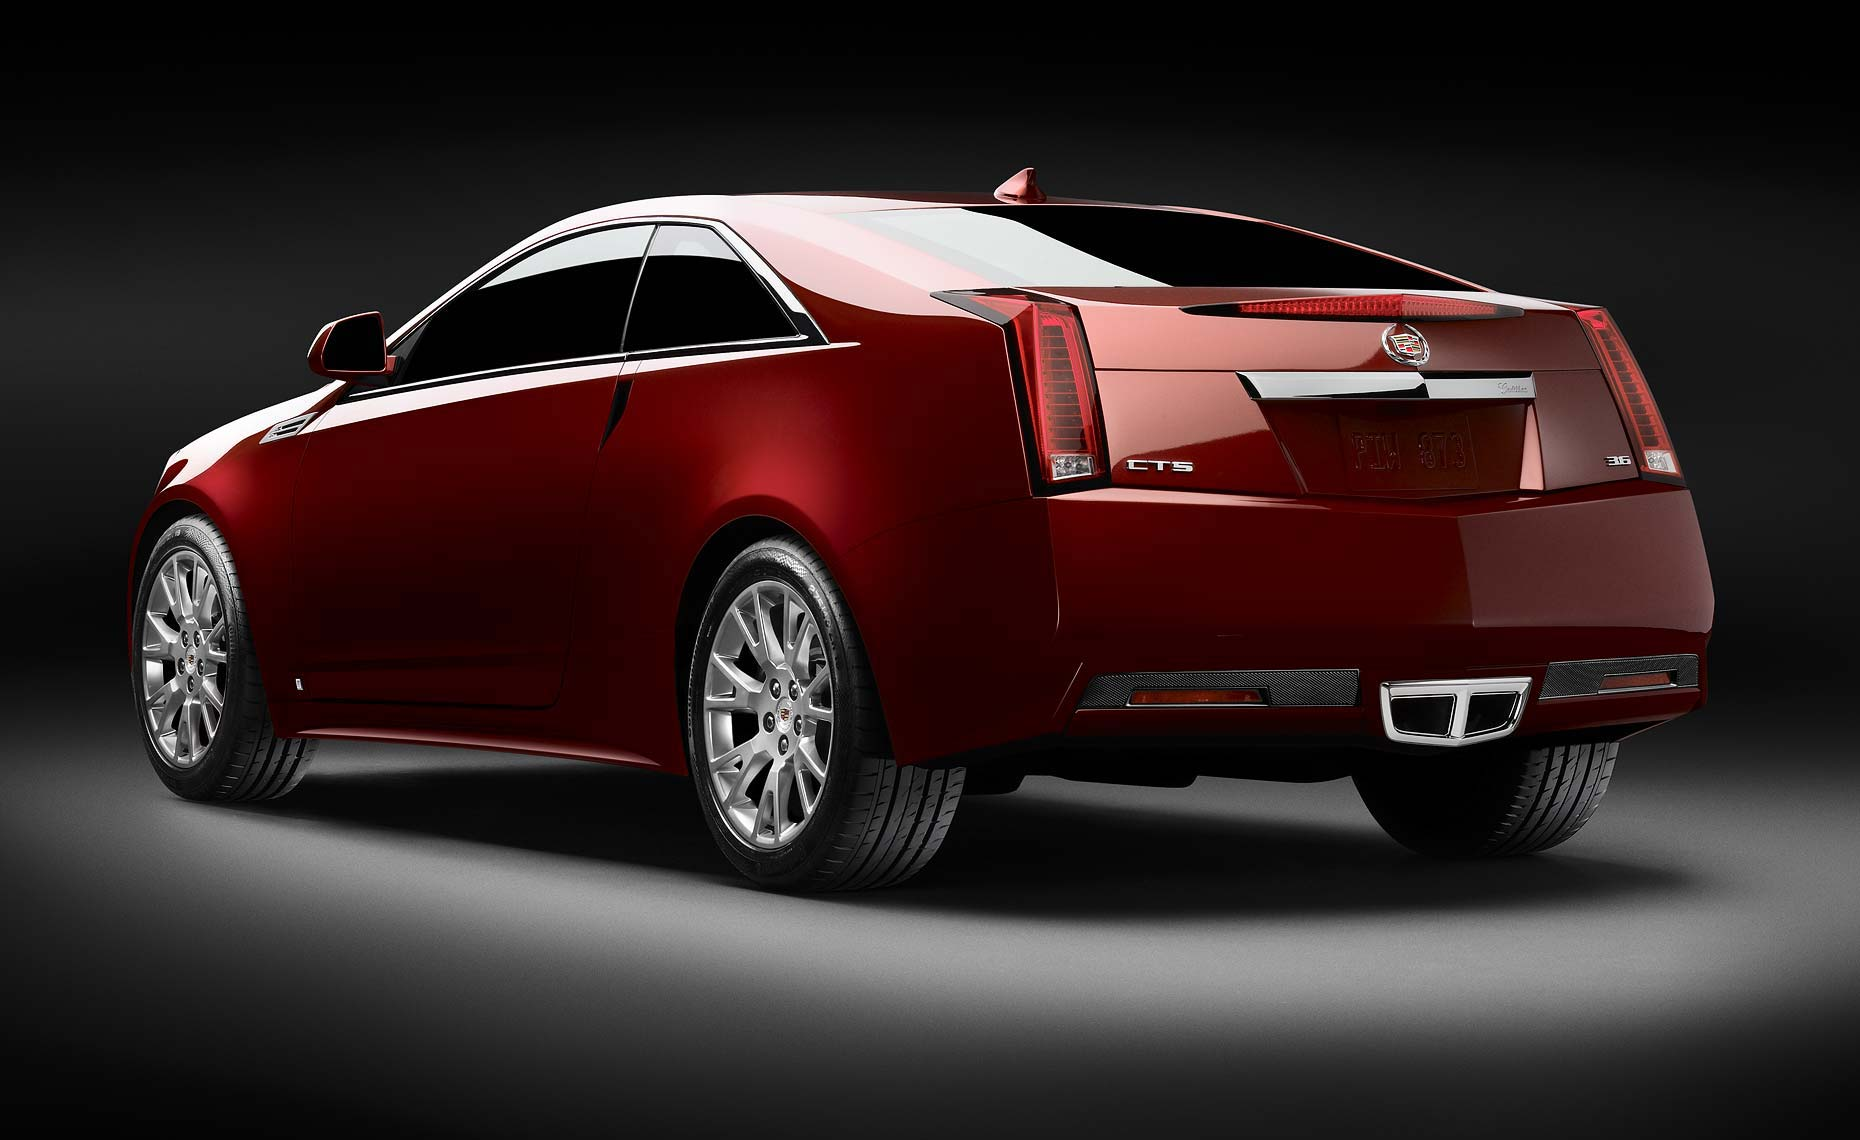 cadillac cts red coupe-3qtr-rear.jpg